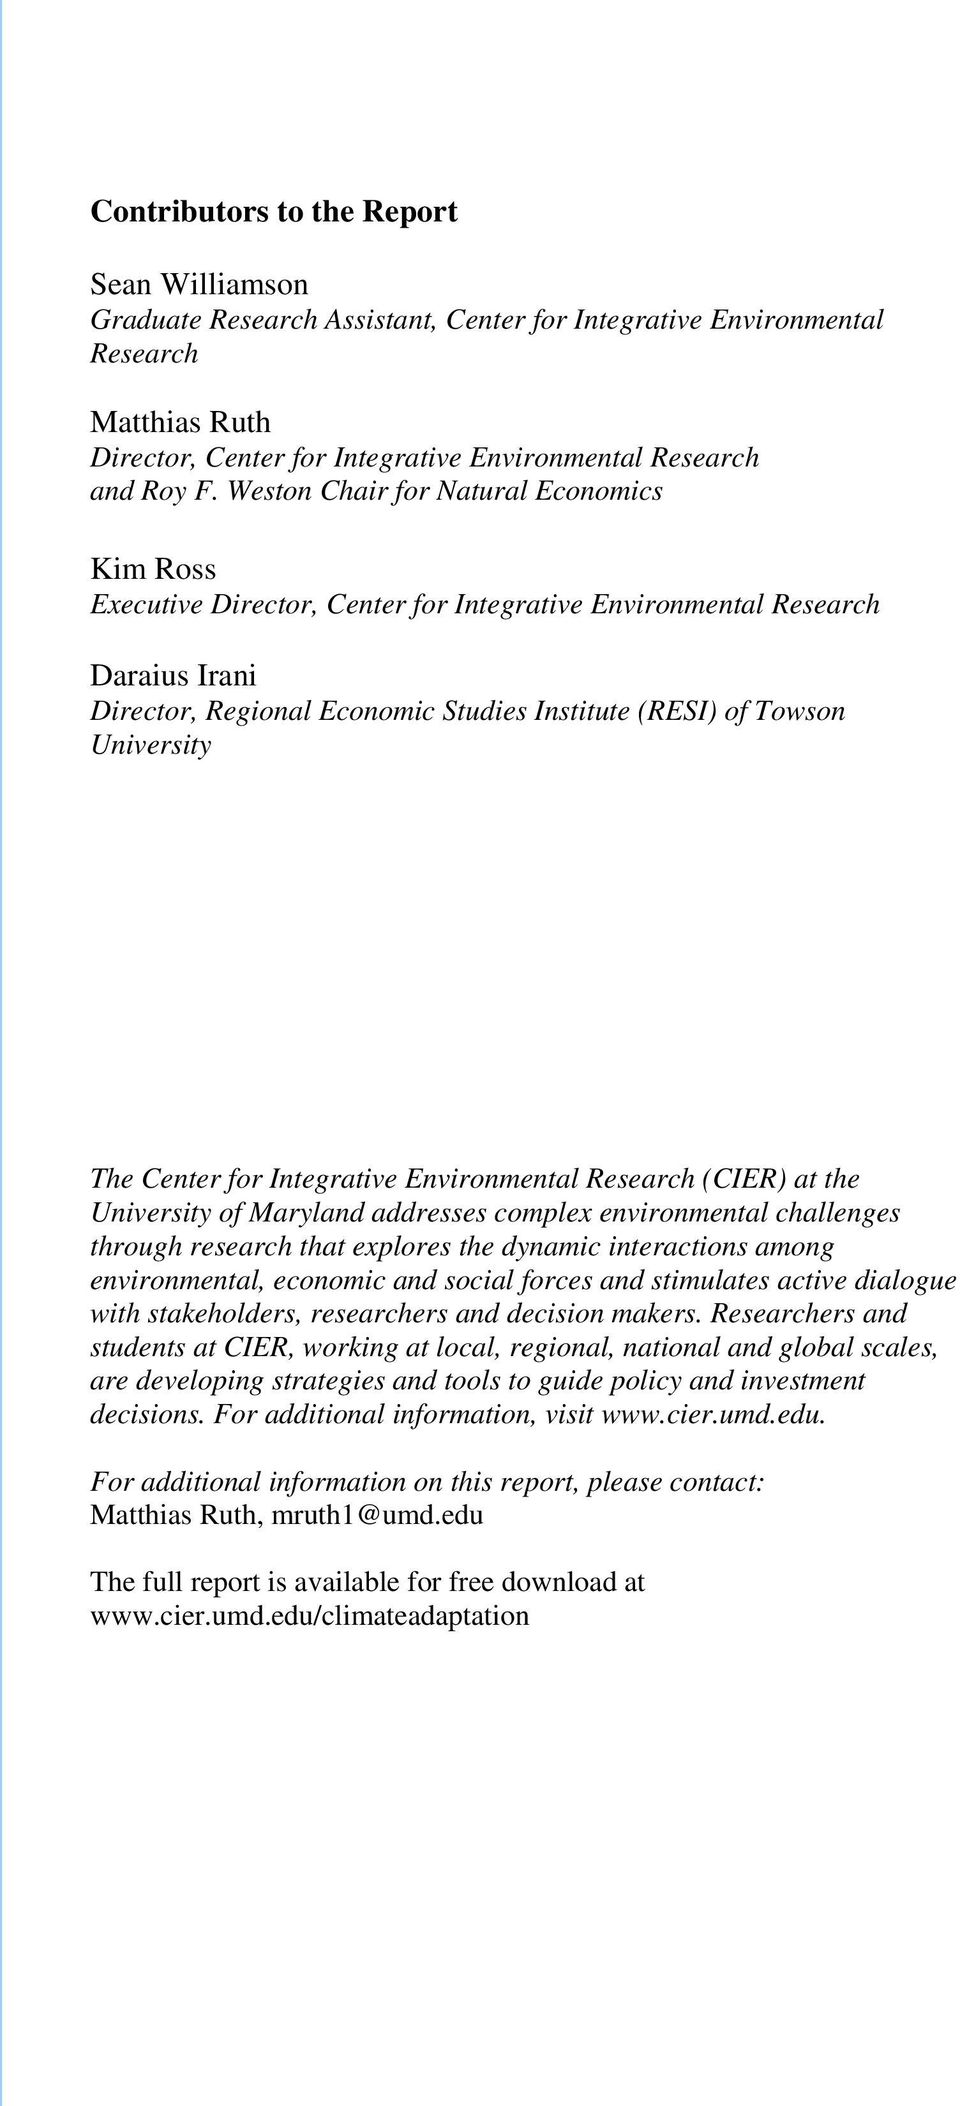 The Center for Integrative Environmental Research (CIER) at the University of Maryland addresses complex environmental challenges through research that explores the dynamic interactions among